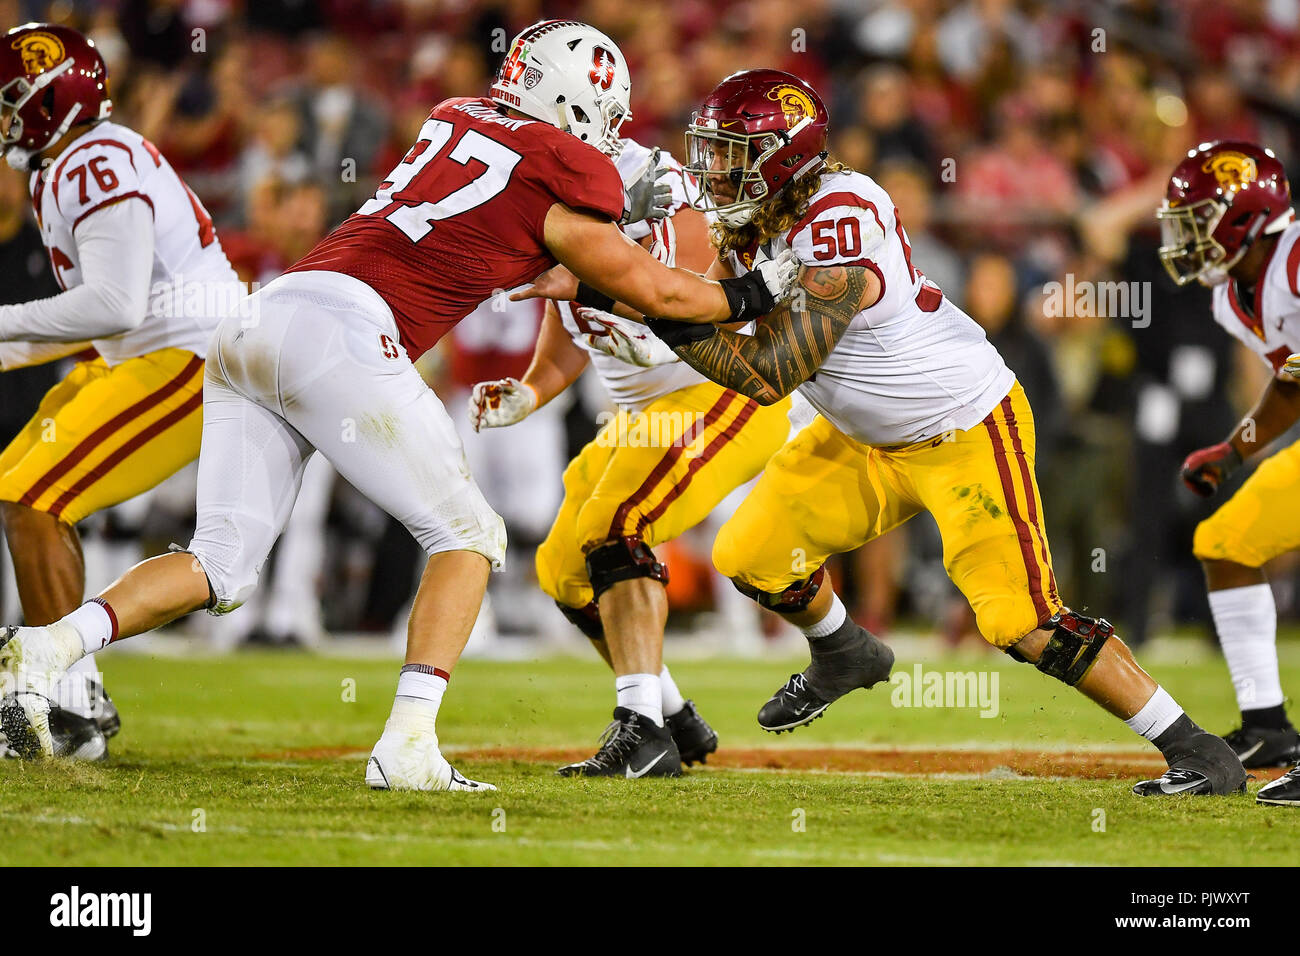 Stanford, California, USA. 08th Sep, 2018. USC Trojans center Toa Lobendahn (50) pass blocks during the NCAA football game between the USC Trojans and the Stanford Cardinal at Stanford Stadium in Stanford, California. Chris Brown/CSM/Alamy Live News - Stock Image